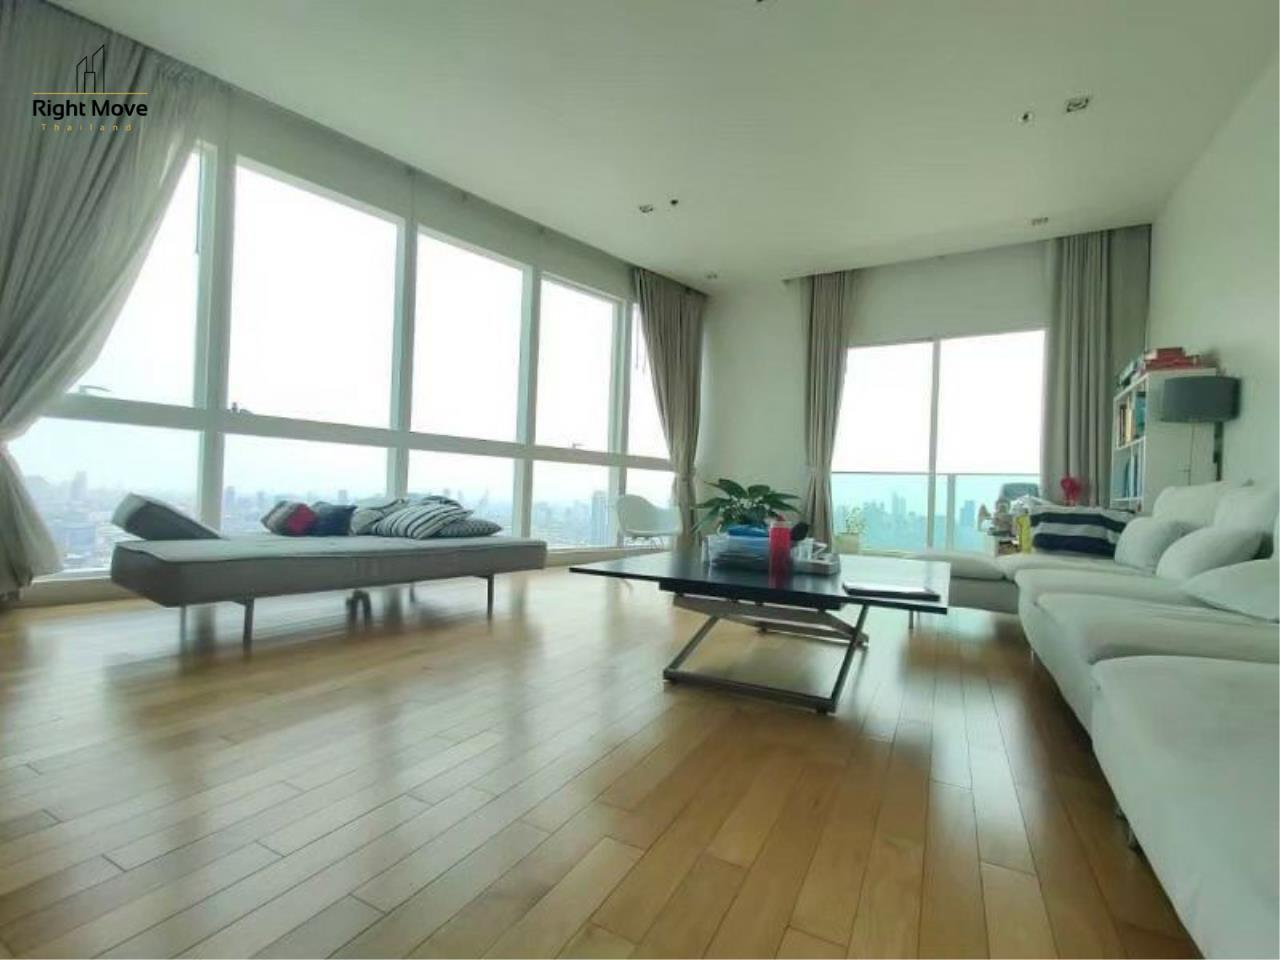 Right Move Thailand Agency's CA4023 Millennium Residence For Rent 120,000 THB -  3 Bedrooms - 193.5 Sqm 1